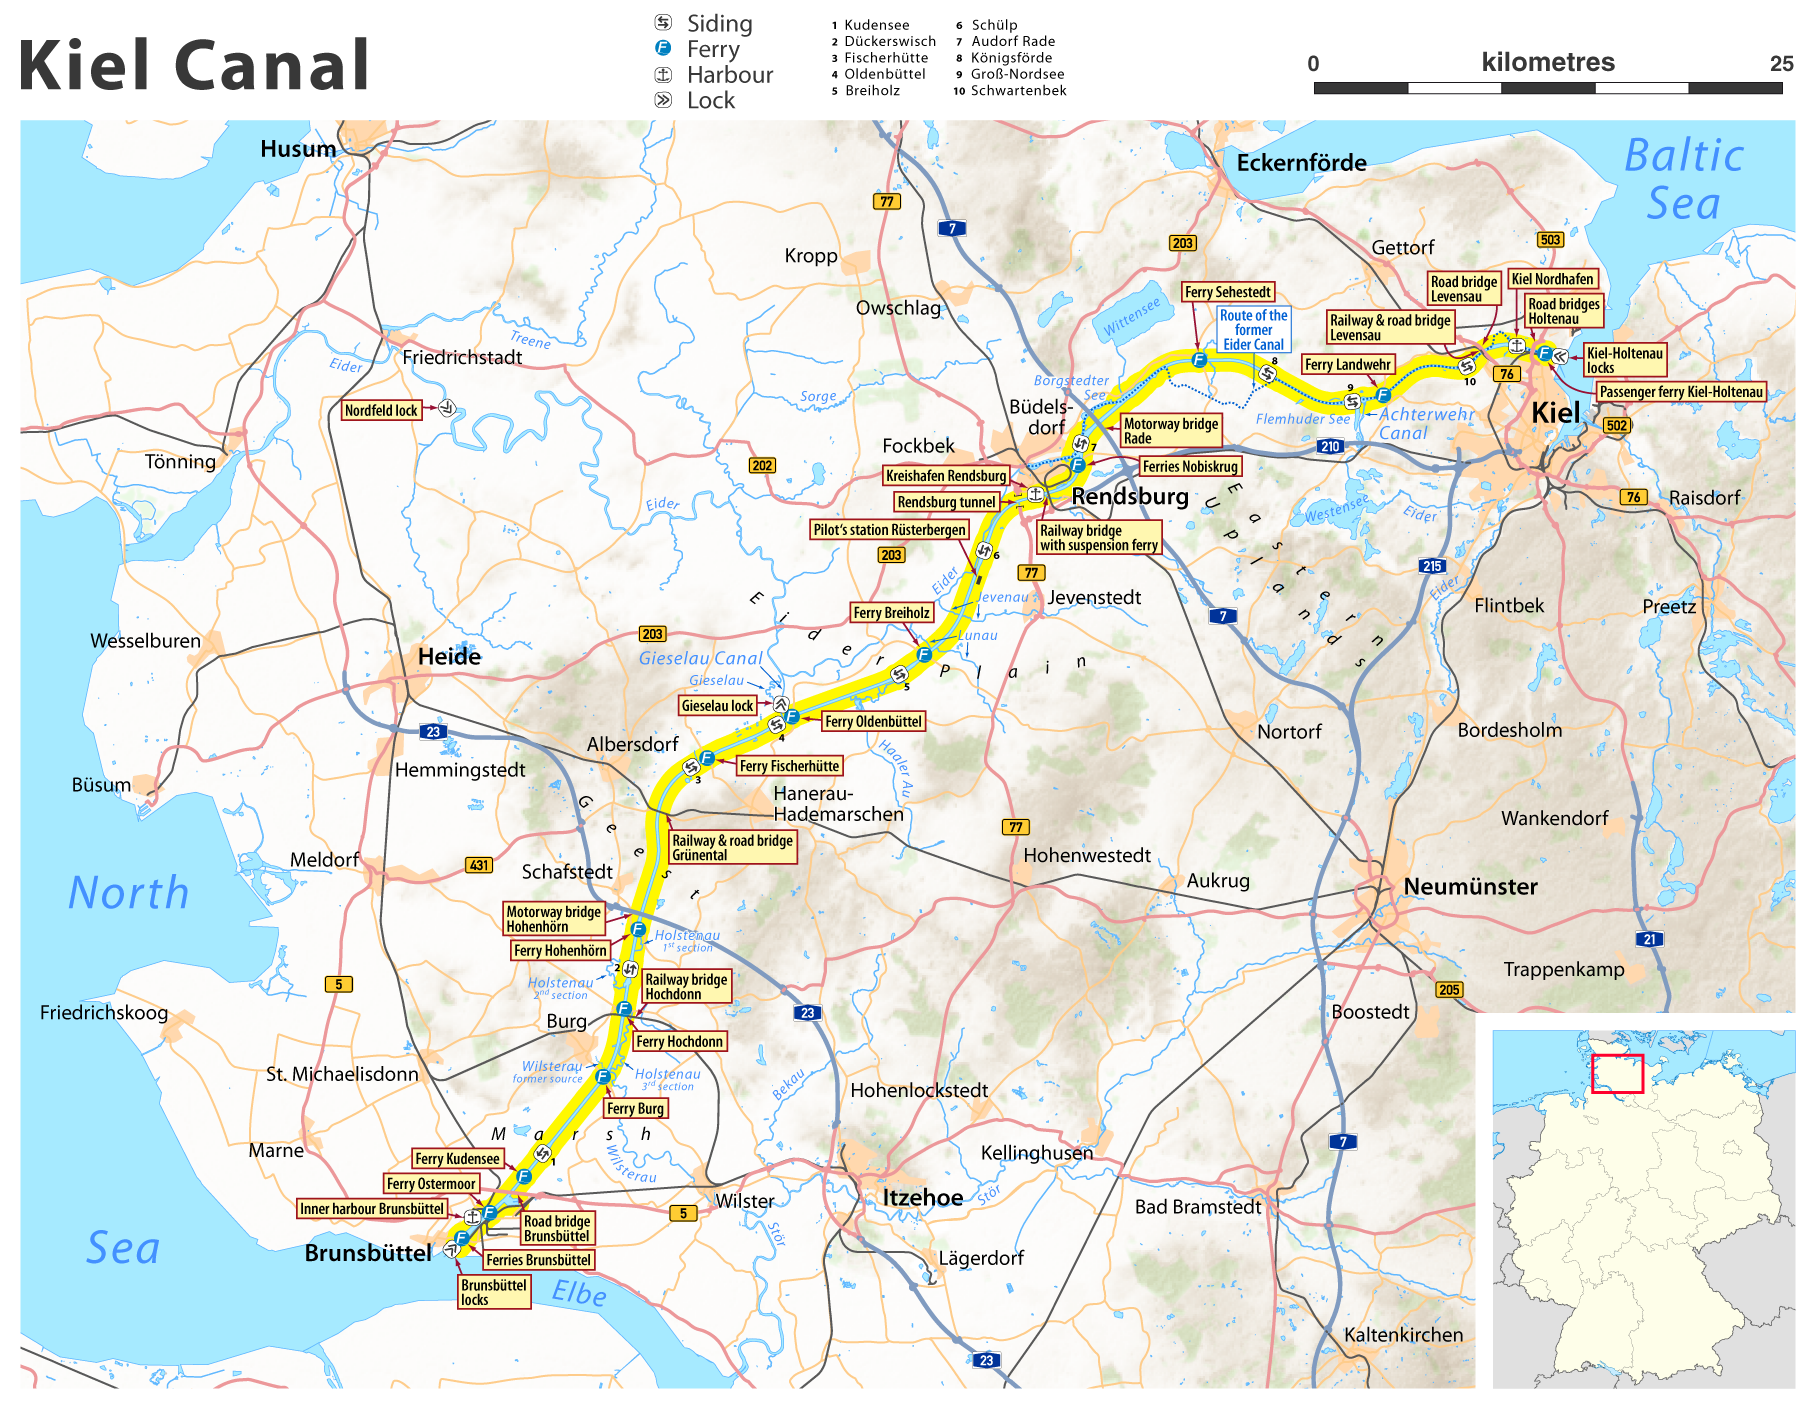 File:Map of the Kiel Canal.png   Wikimedia Commons